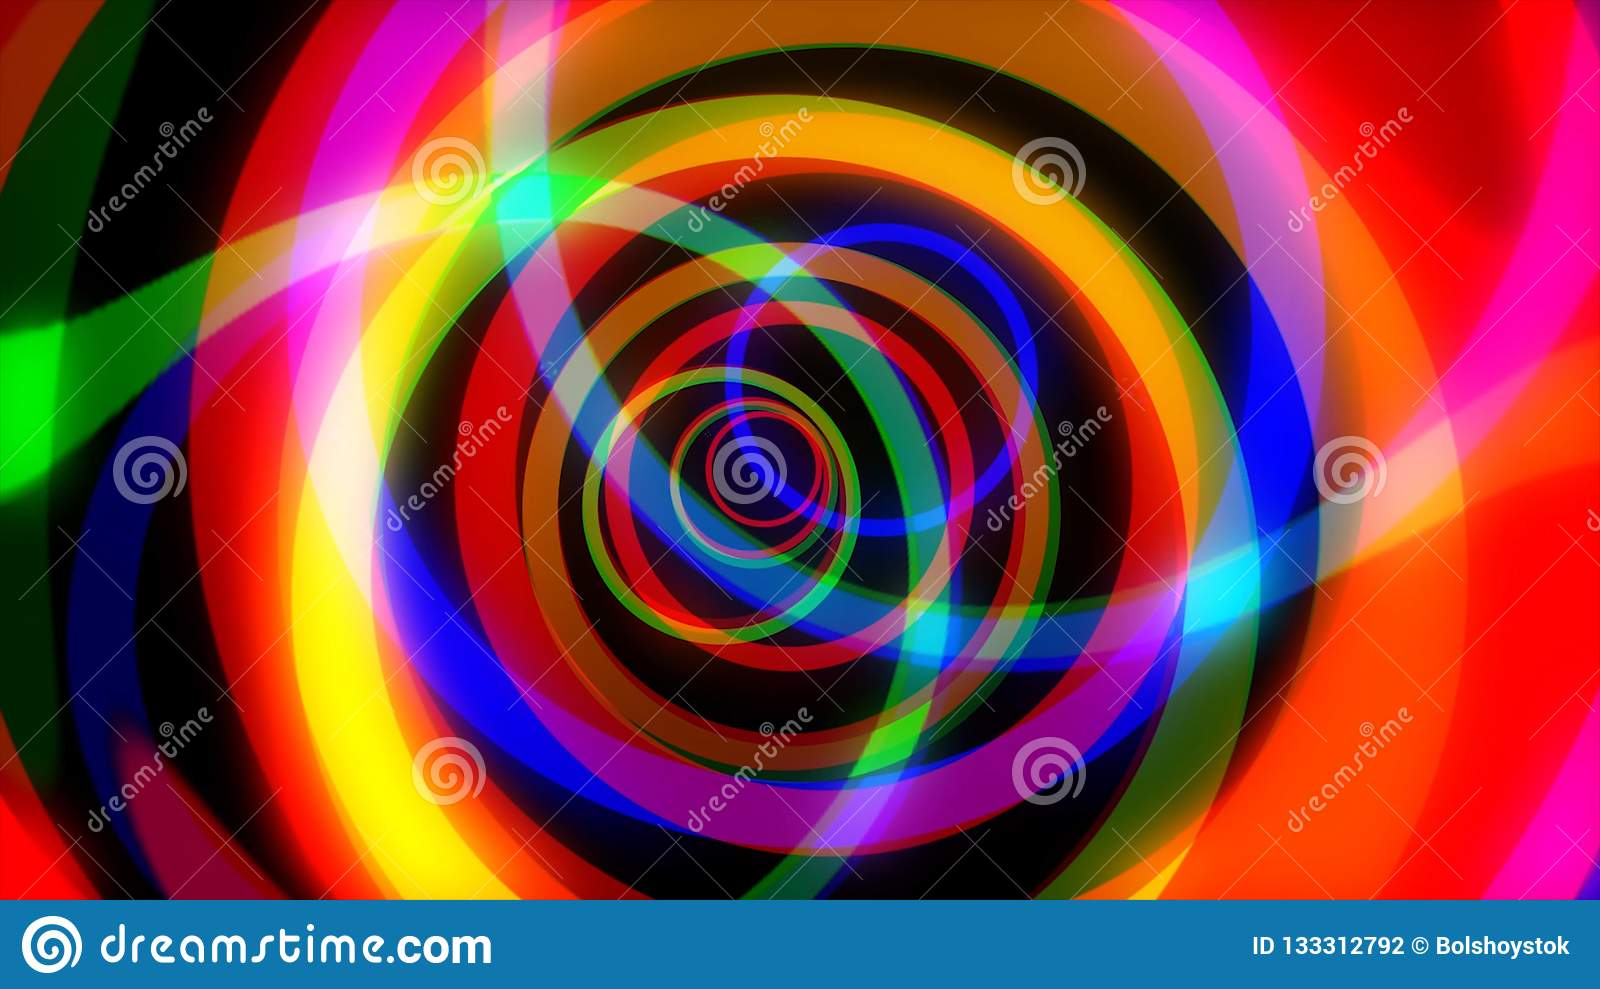 Rotating rainbow swirl. Seamless loop. Psychedelic tunnel multicolored trip. Computer generated abstract motion